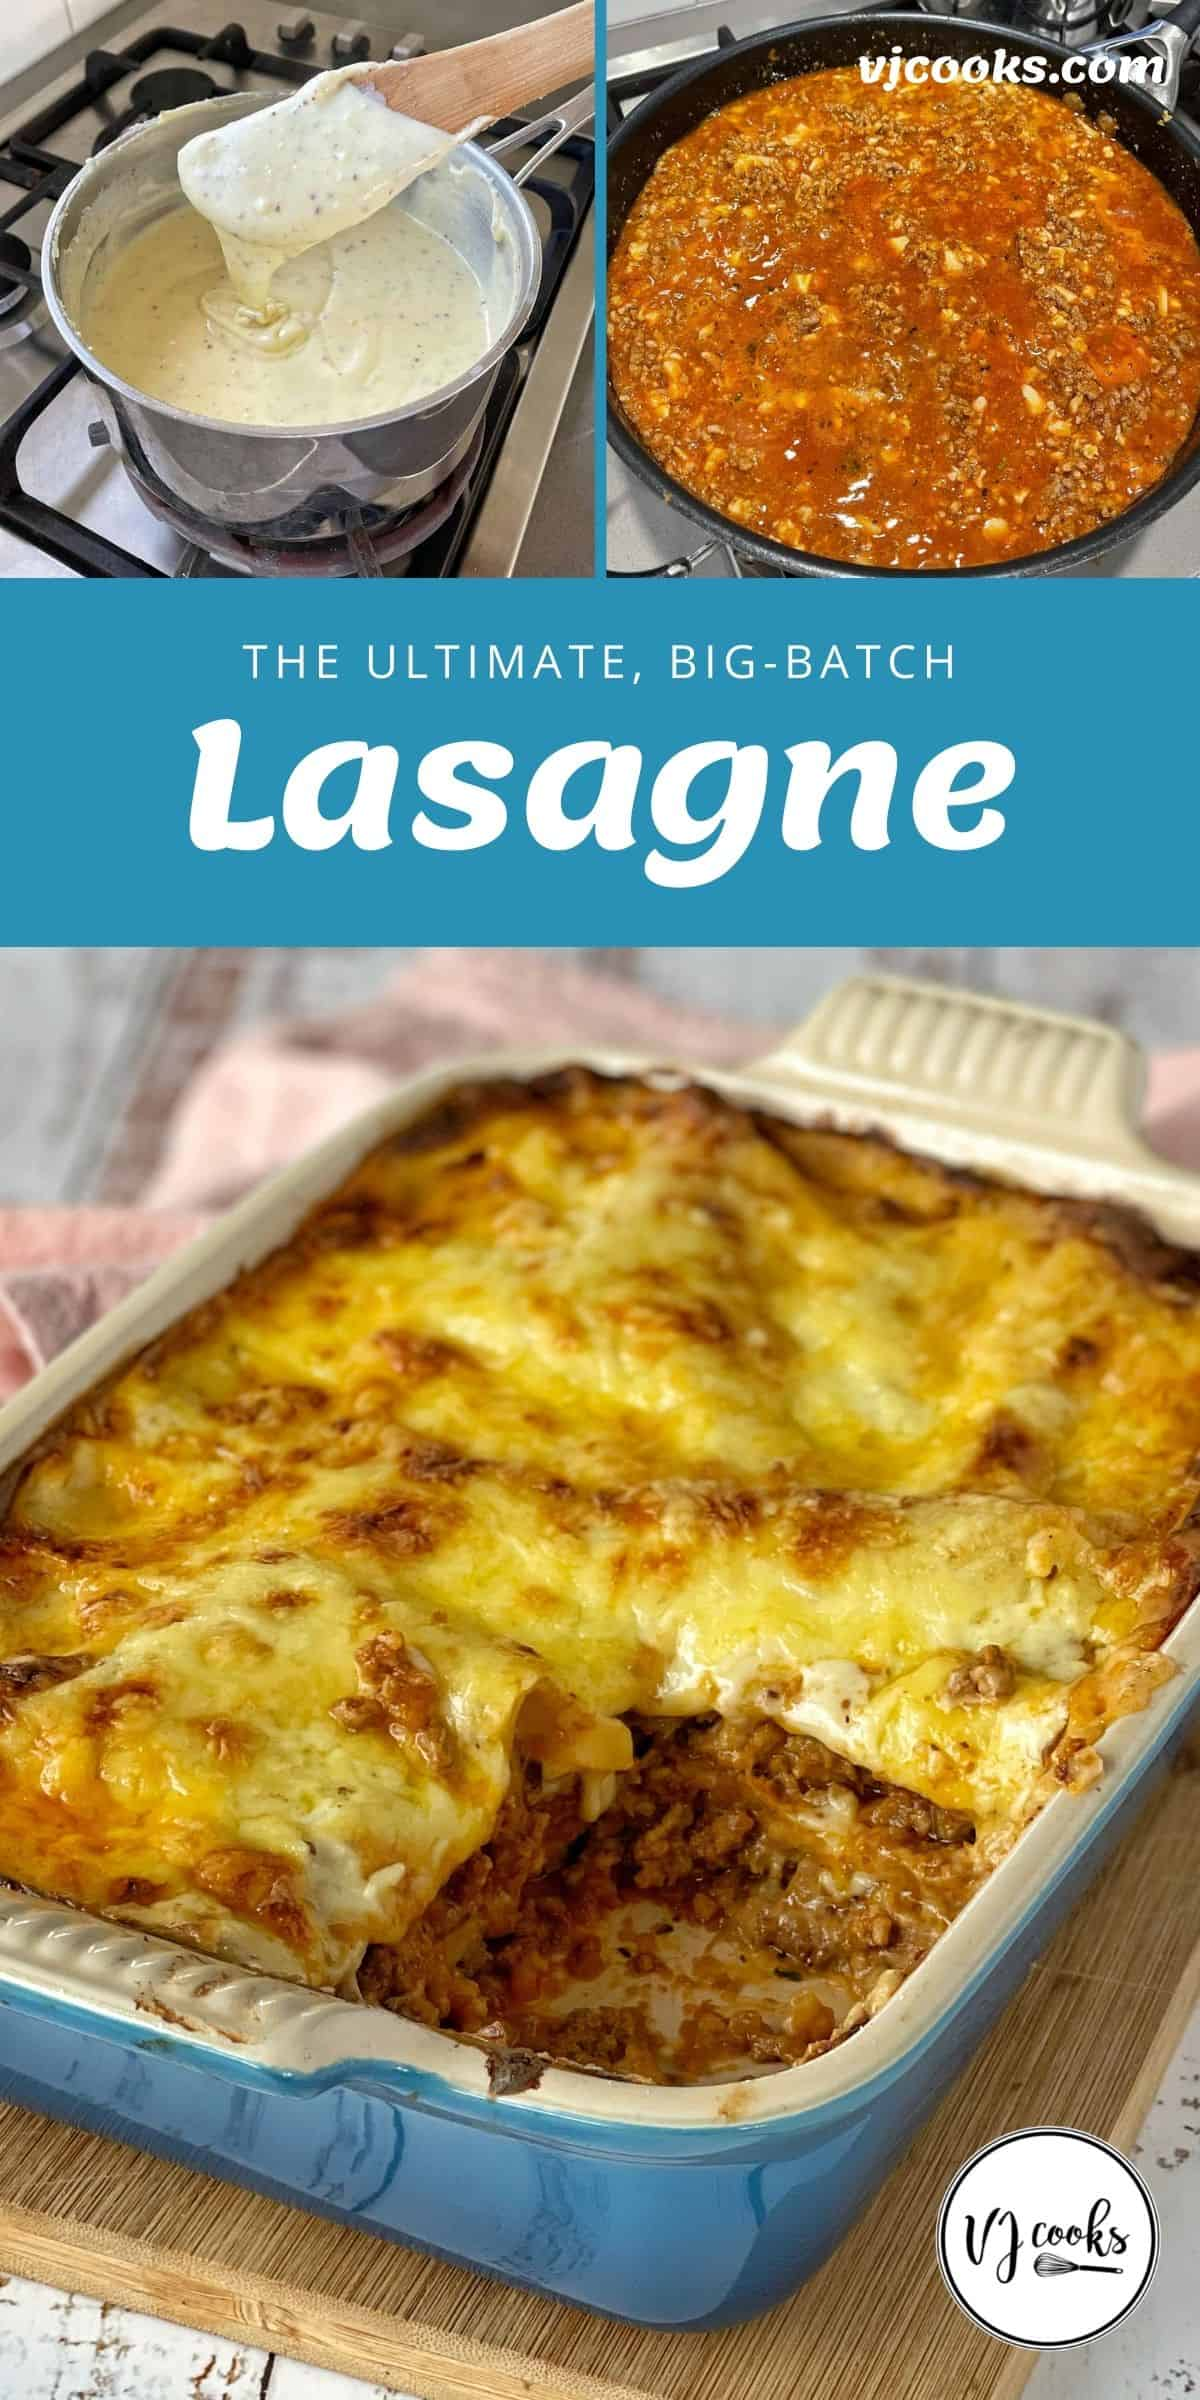 The process of making Lasagne and the finished product.